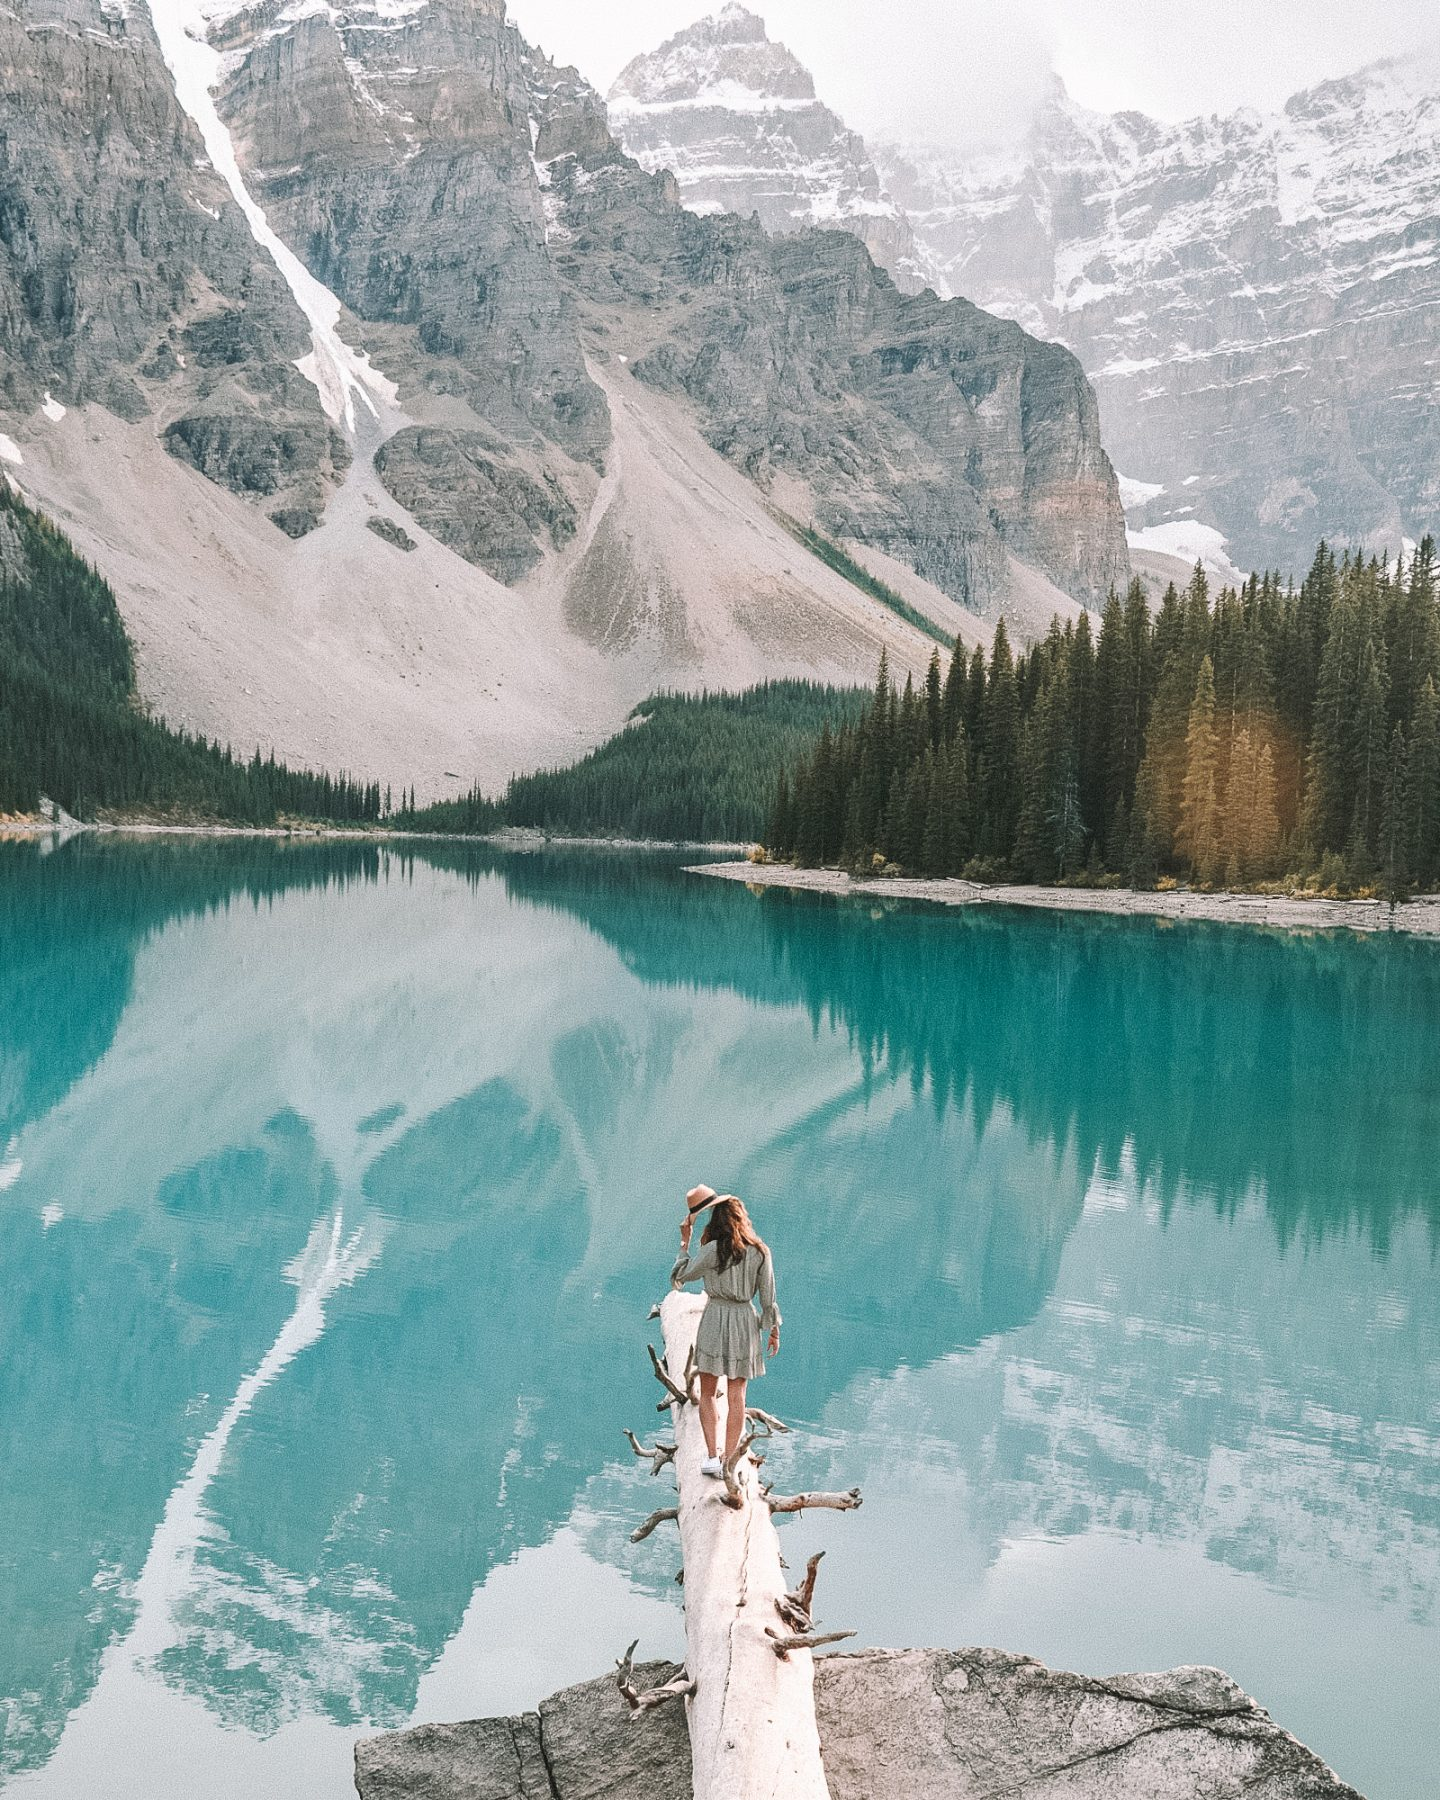 girl on log at moraine lake banff national park canada